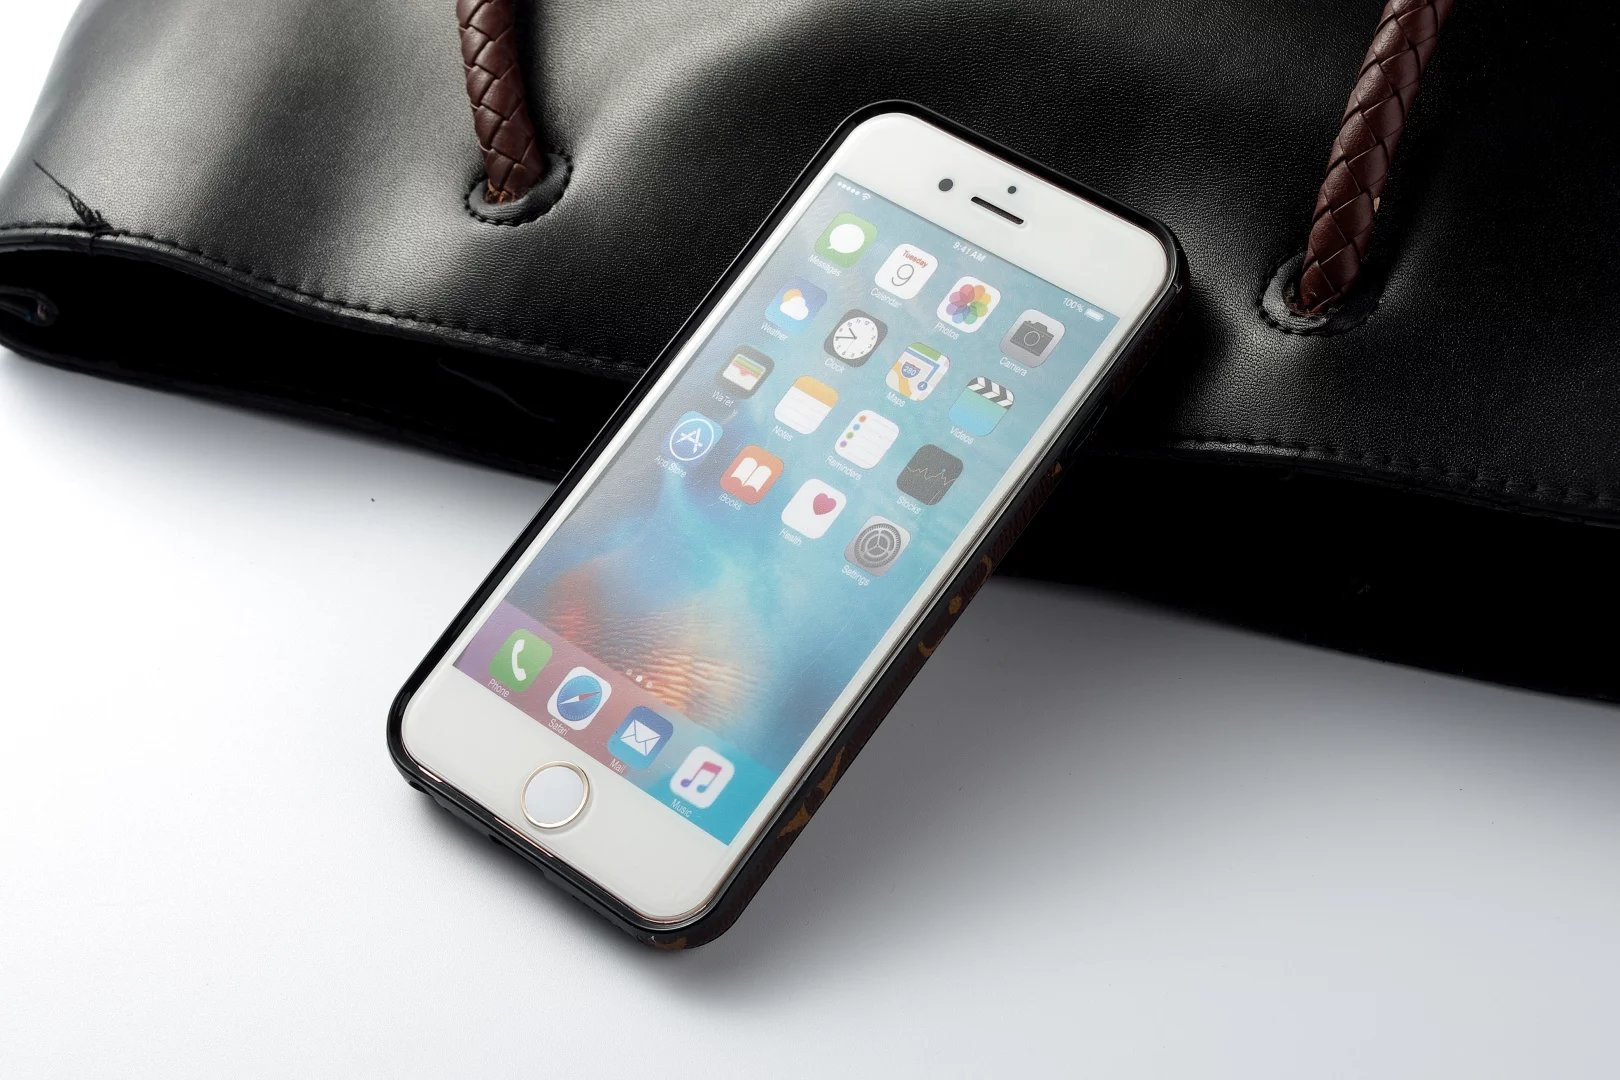 lederhülle iphone iphone case erstellen Louis Vuitton iphone6 hülle apple iphone 6 display handy hüllen für iphone 6 coole handyhüllen iphone 6 iphone hülle gestalten apple iphone neu iphone 6 hülle plastik